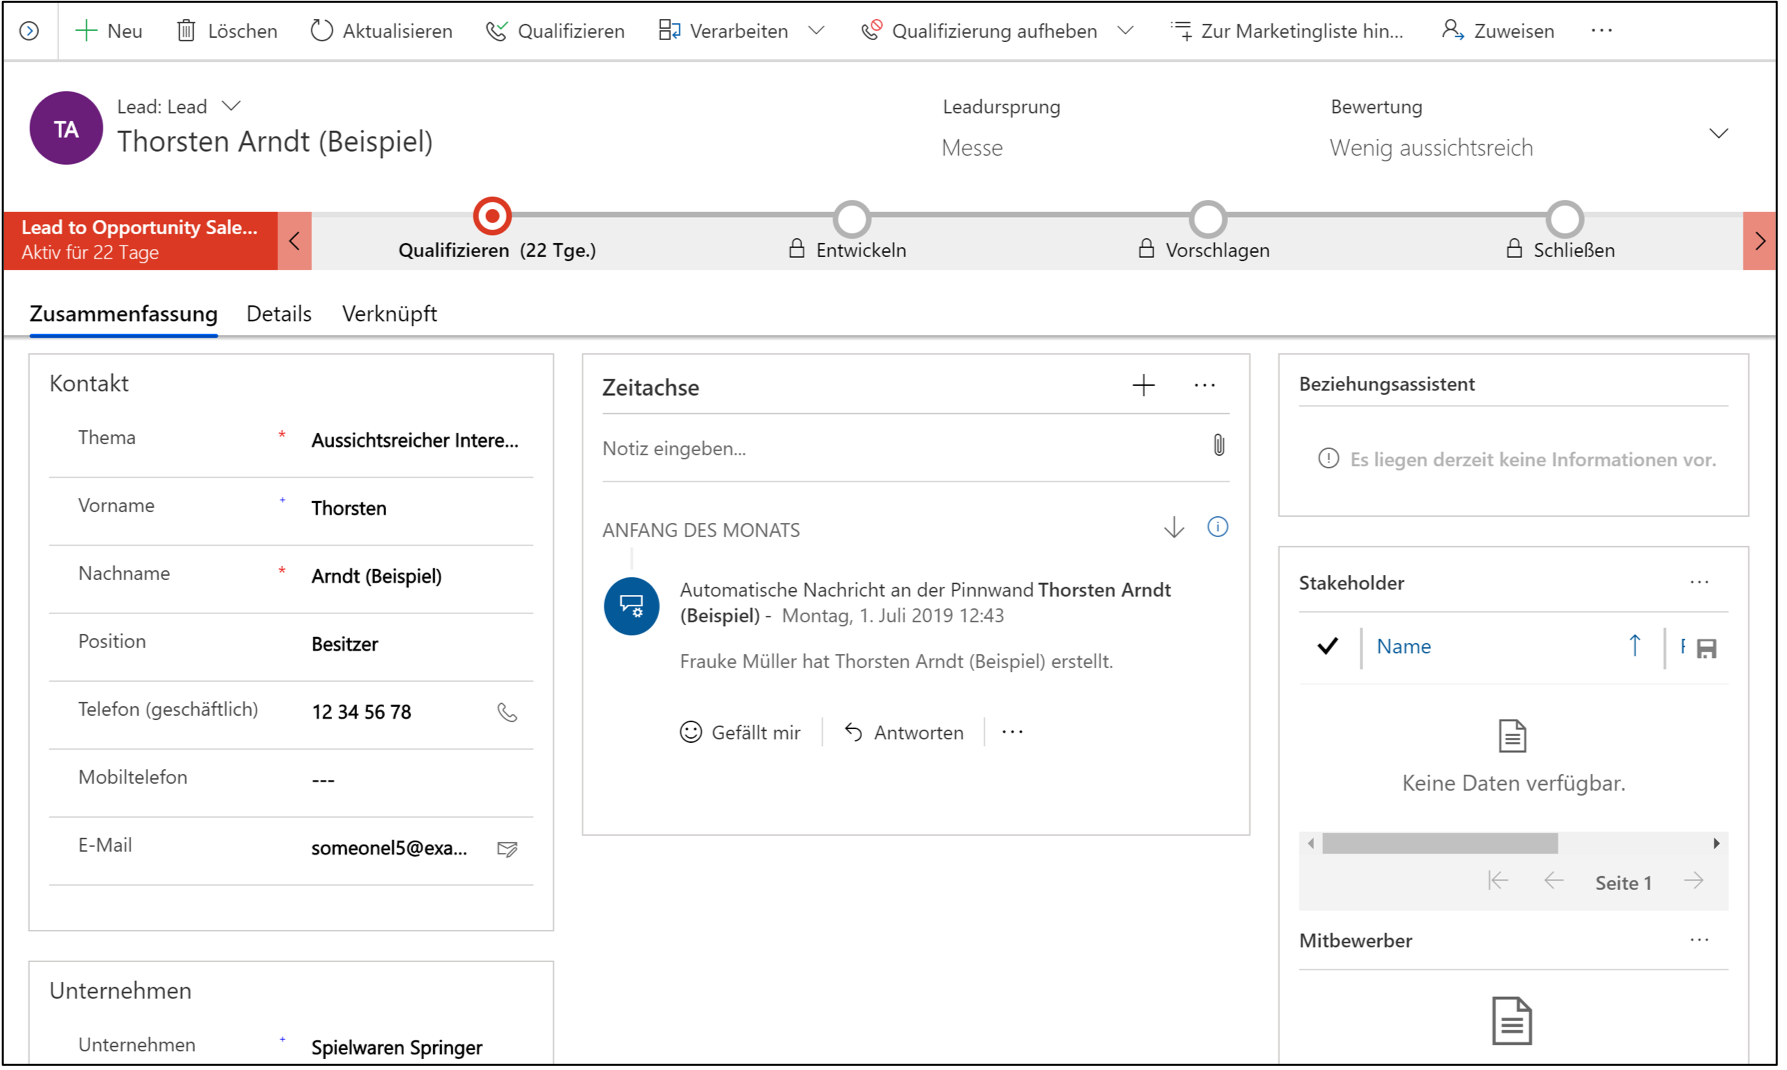 Microsoft Dynamics 365 for Sales: Das CRM-System für die digitale Transformation.